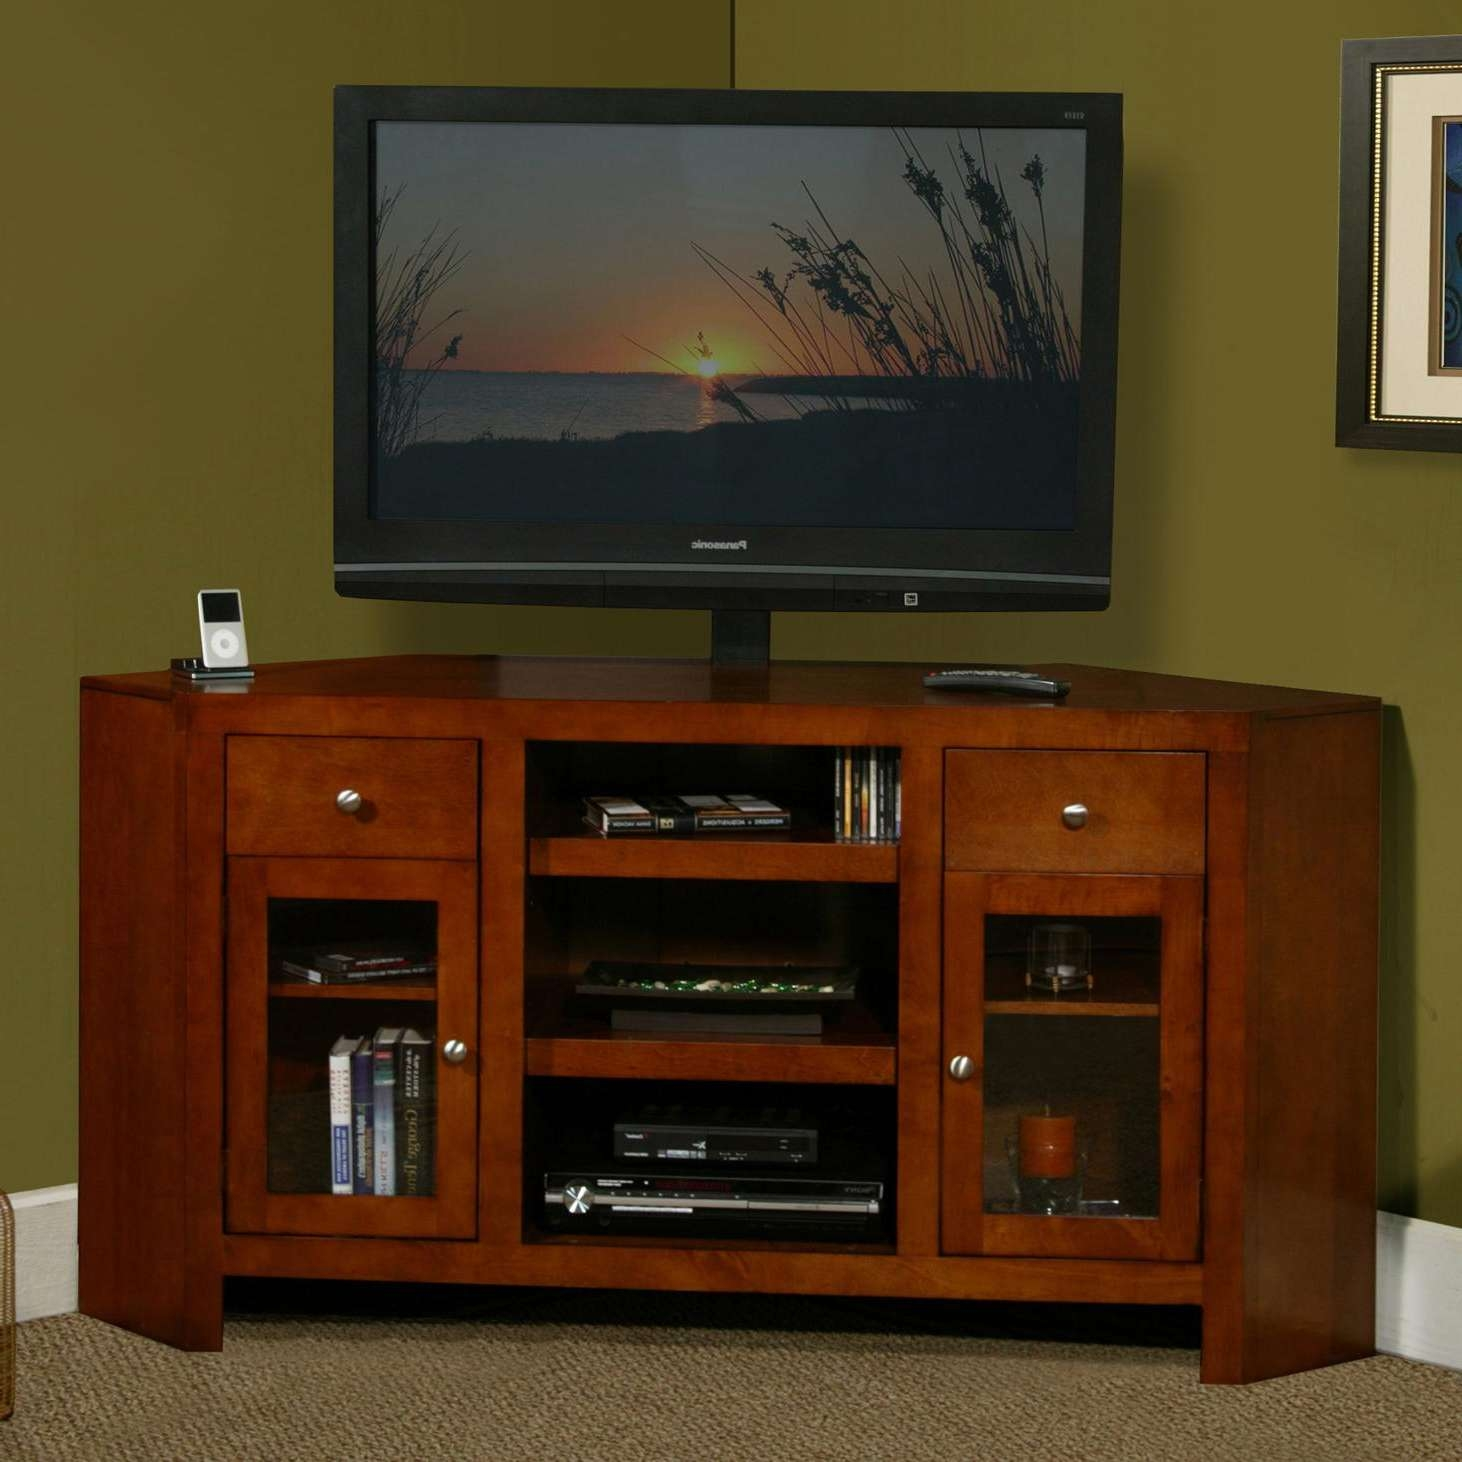 50 Literarywondrous Corner Tv Stand For 55 Tv Photo Ideas Black Within Corner Tv Stands For 50 Inch Tv (View 1 of 20)